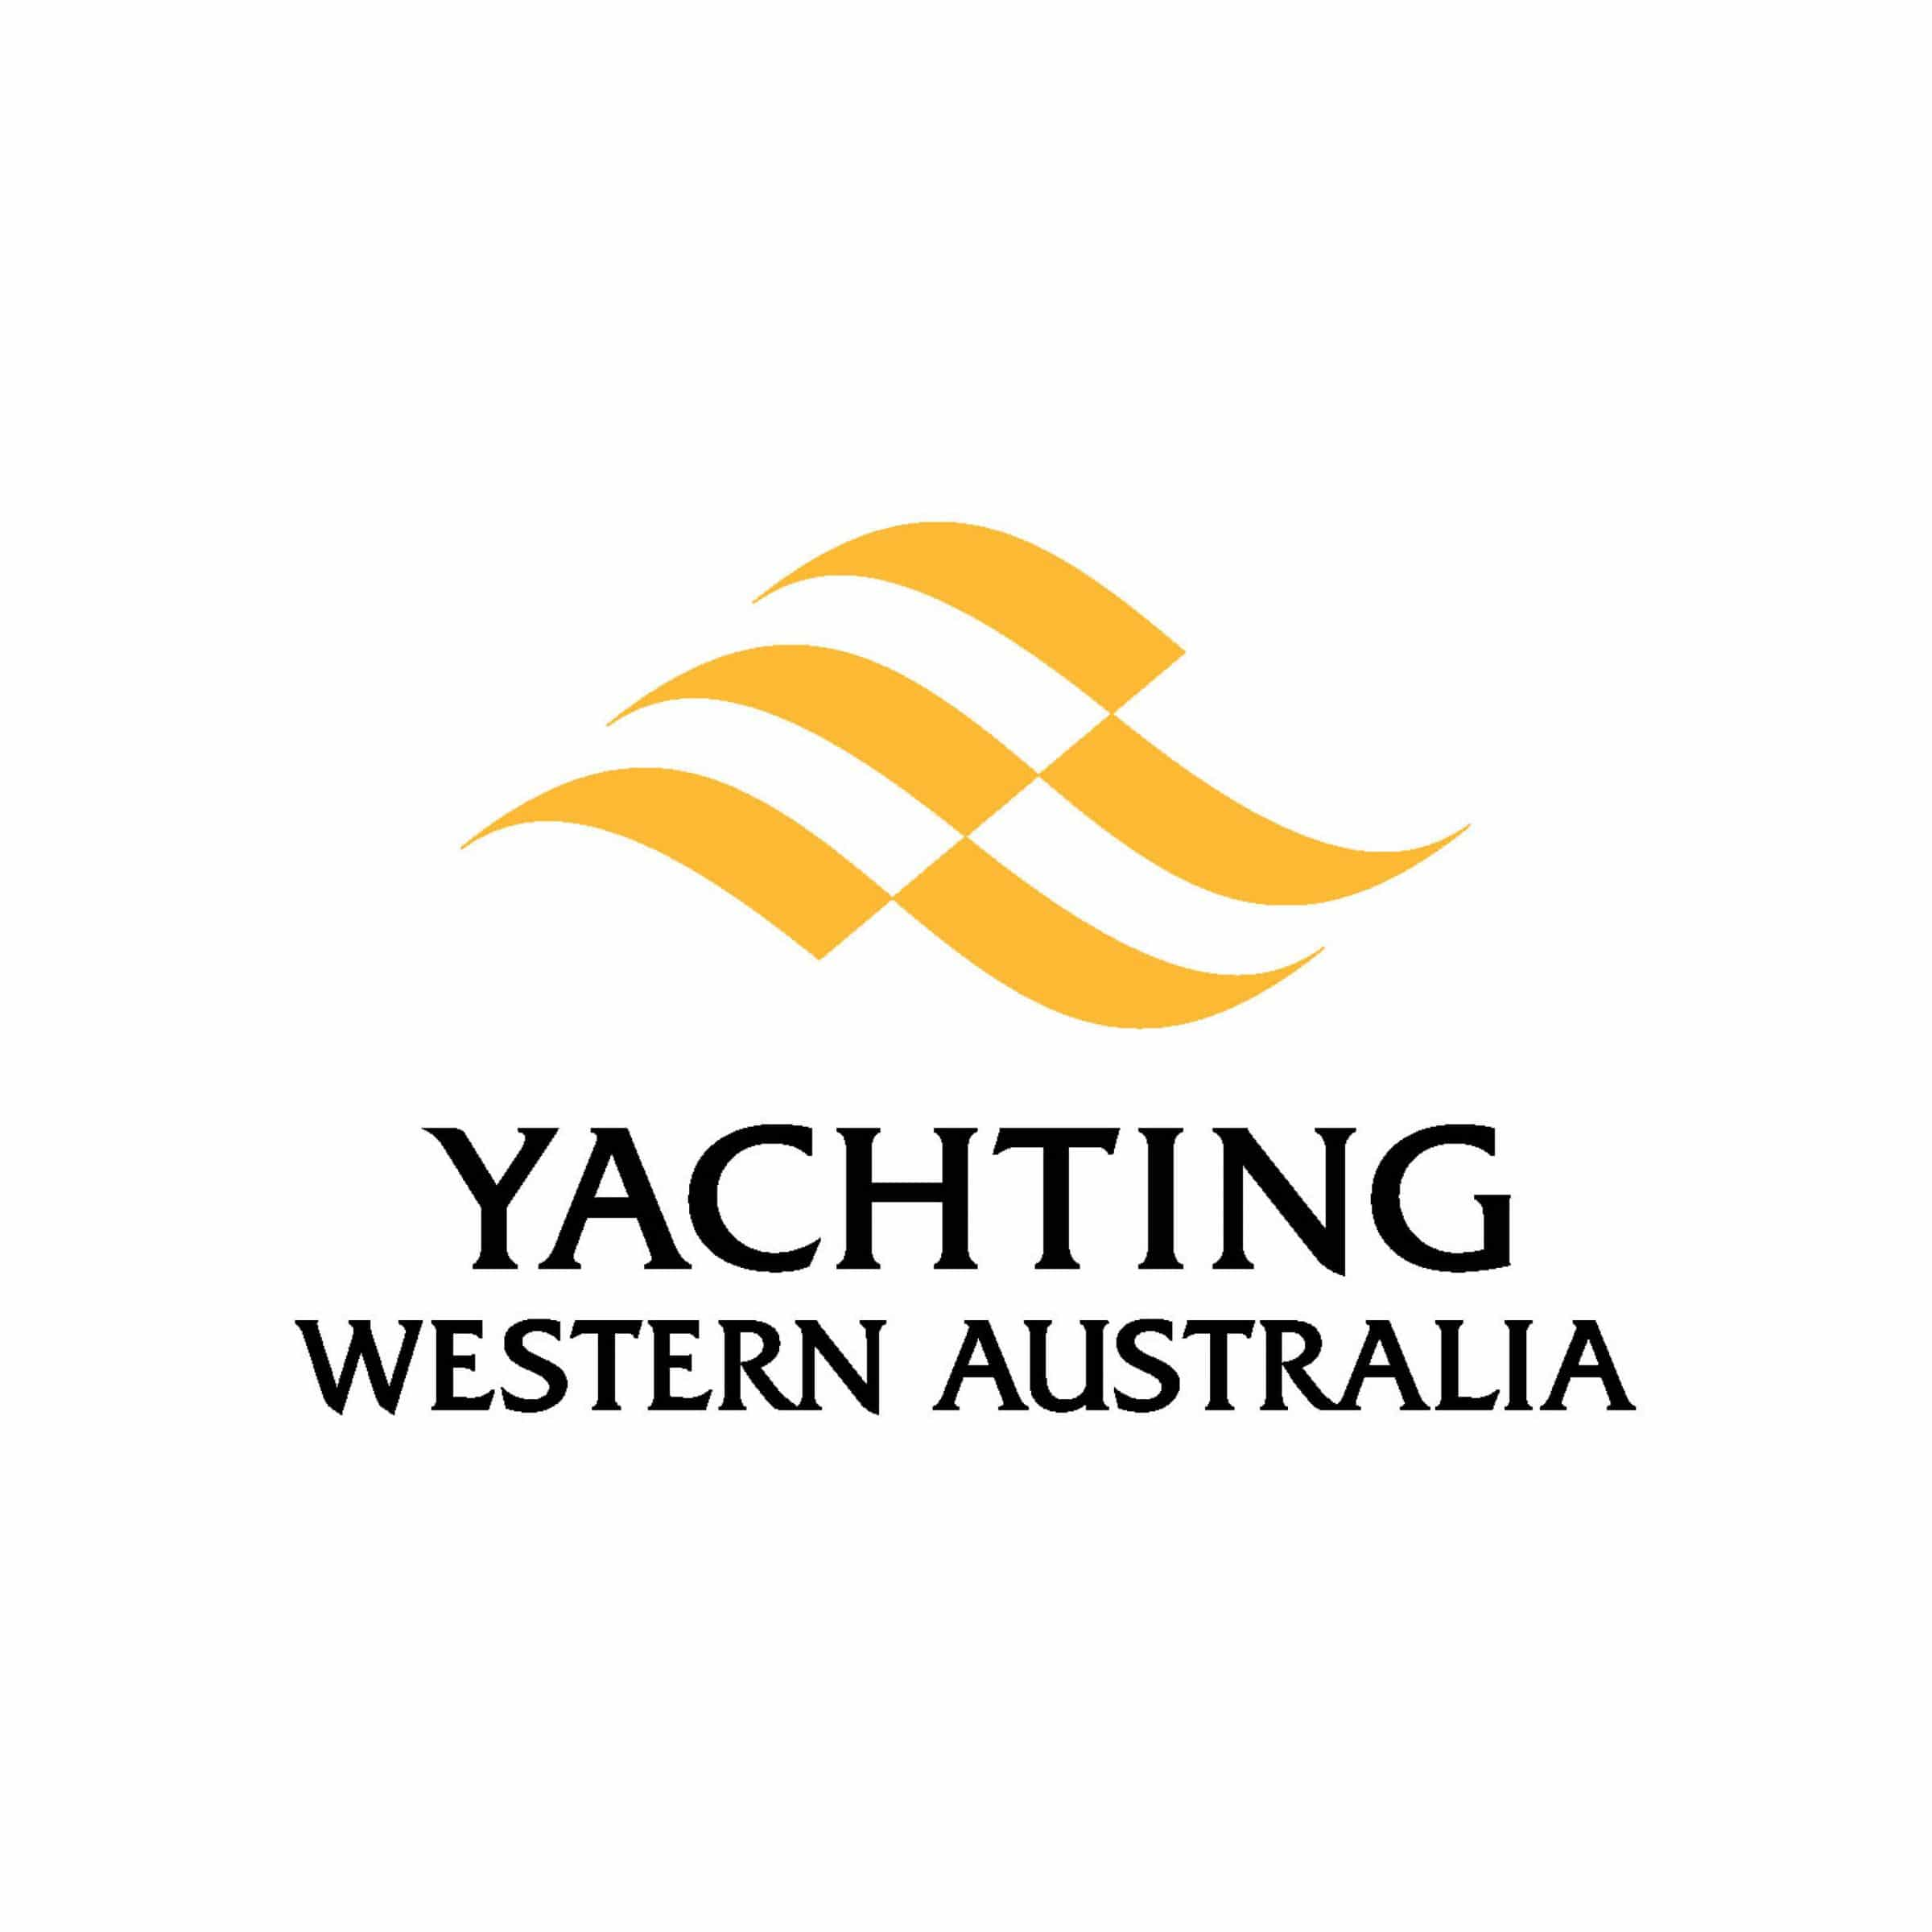 swan river sailing supporter yachting western australia logo